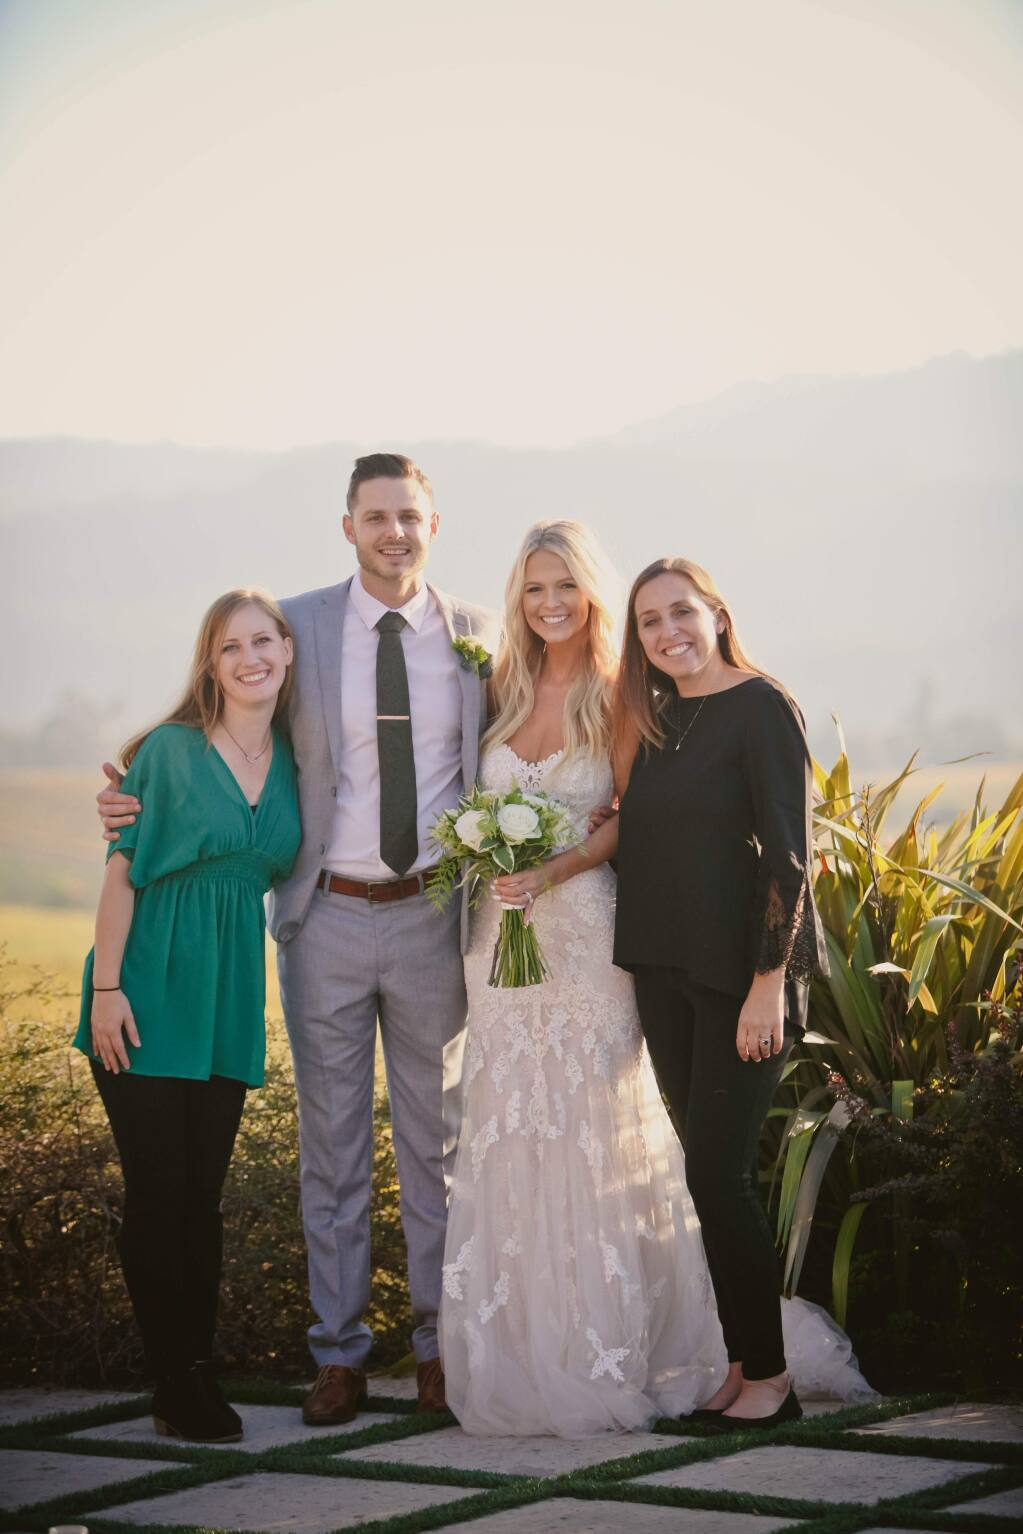 Wedding planners Kalika Ansel (far left) and Brittany Rogers-Hanson (far right) with groom Will White and bride Harrison Sap who, with Hanson's support, overcame obstacles to have their Wine Country wedding Wednesday. (photo courtesy of Runawaywithme weddings)